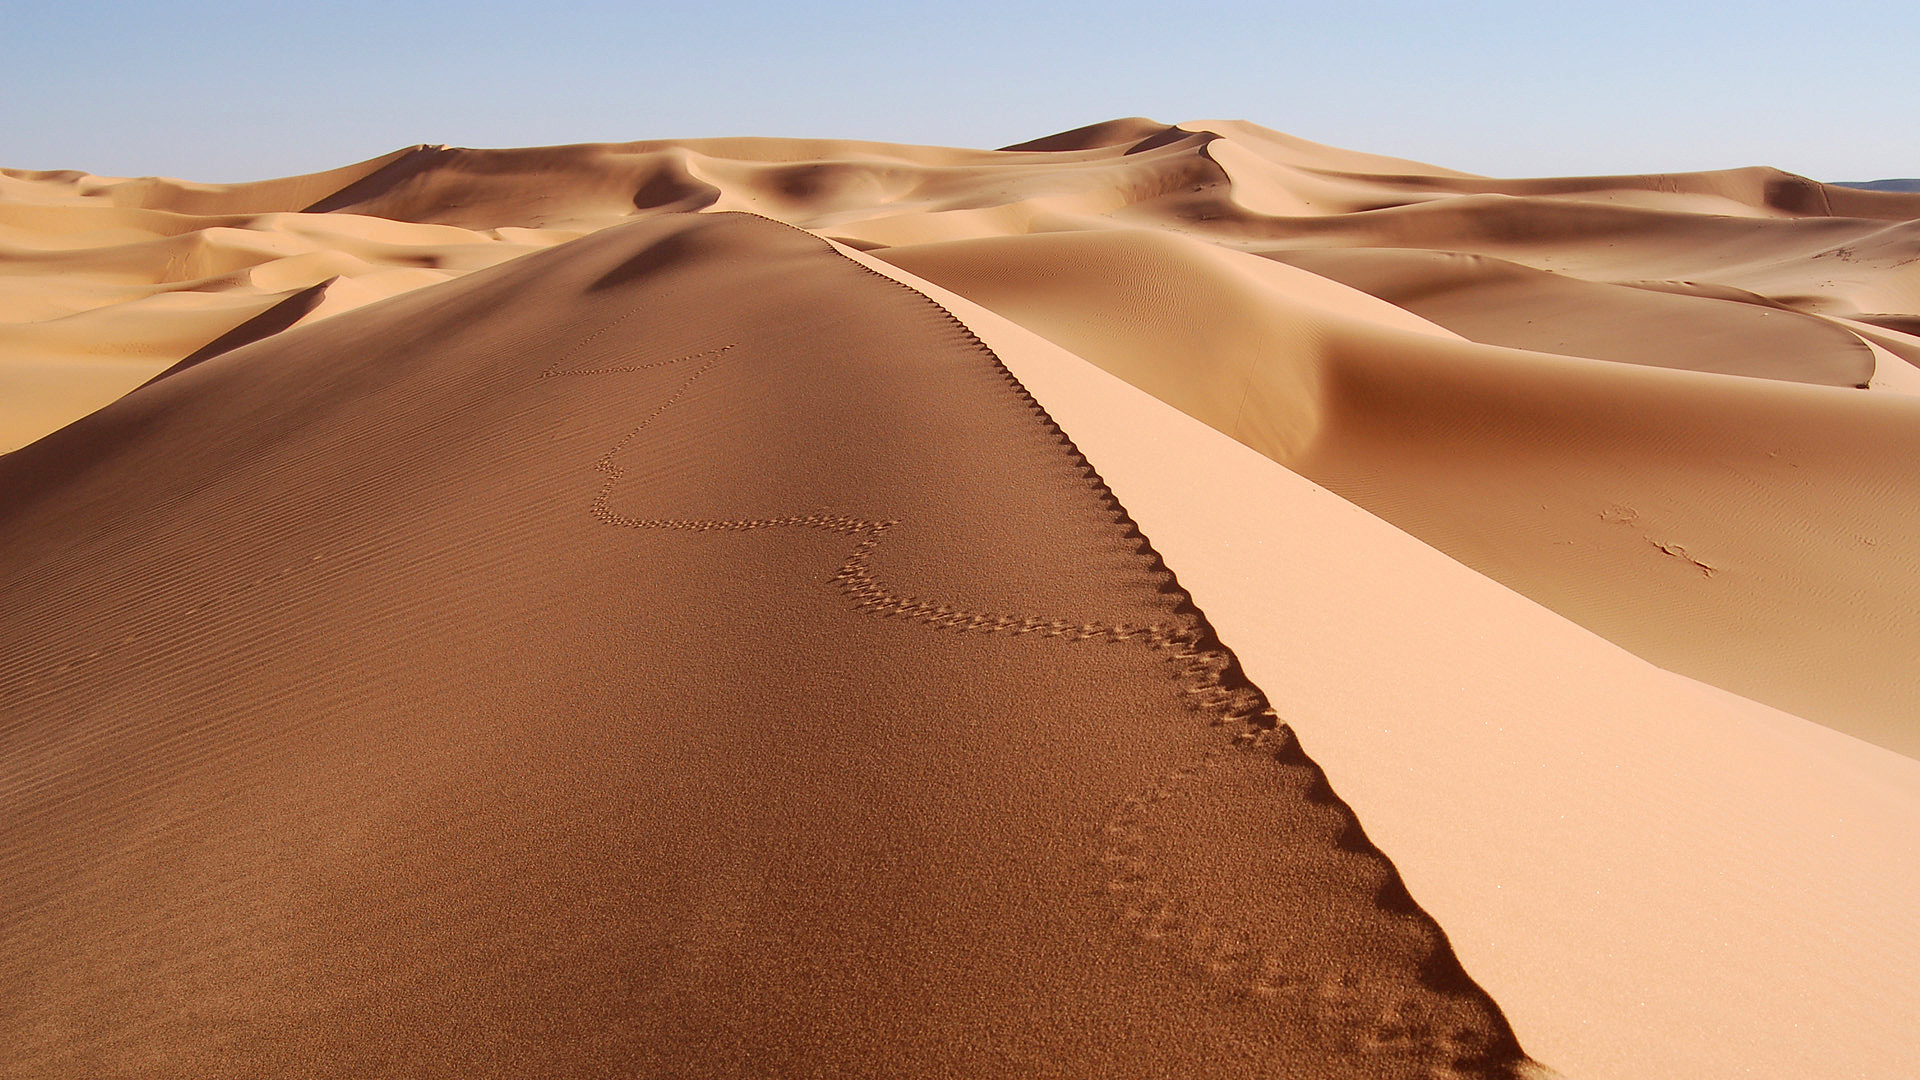 12375 download wallpaper Landscape, Sand, Desert screensavers and pictures for free